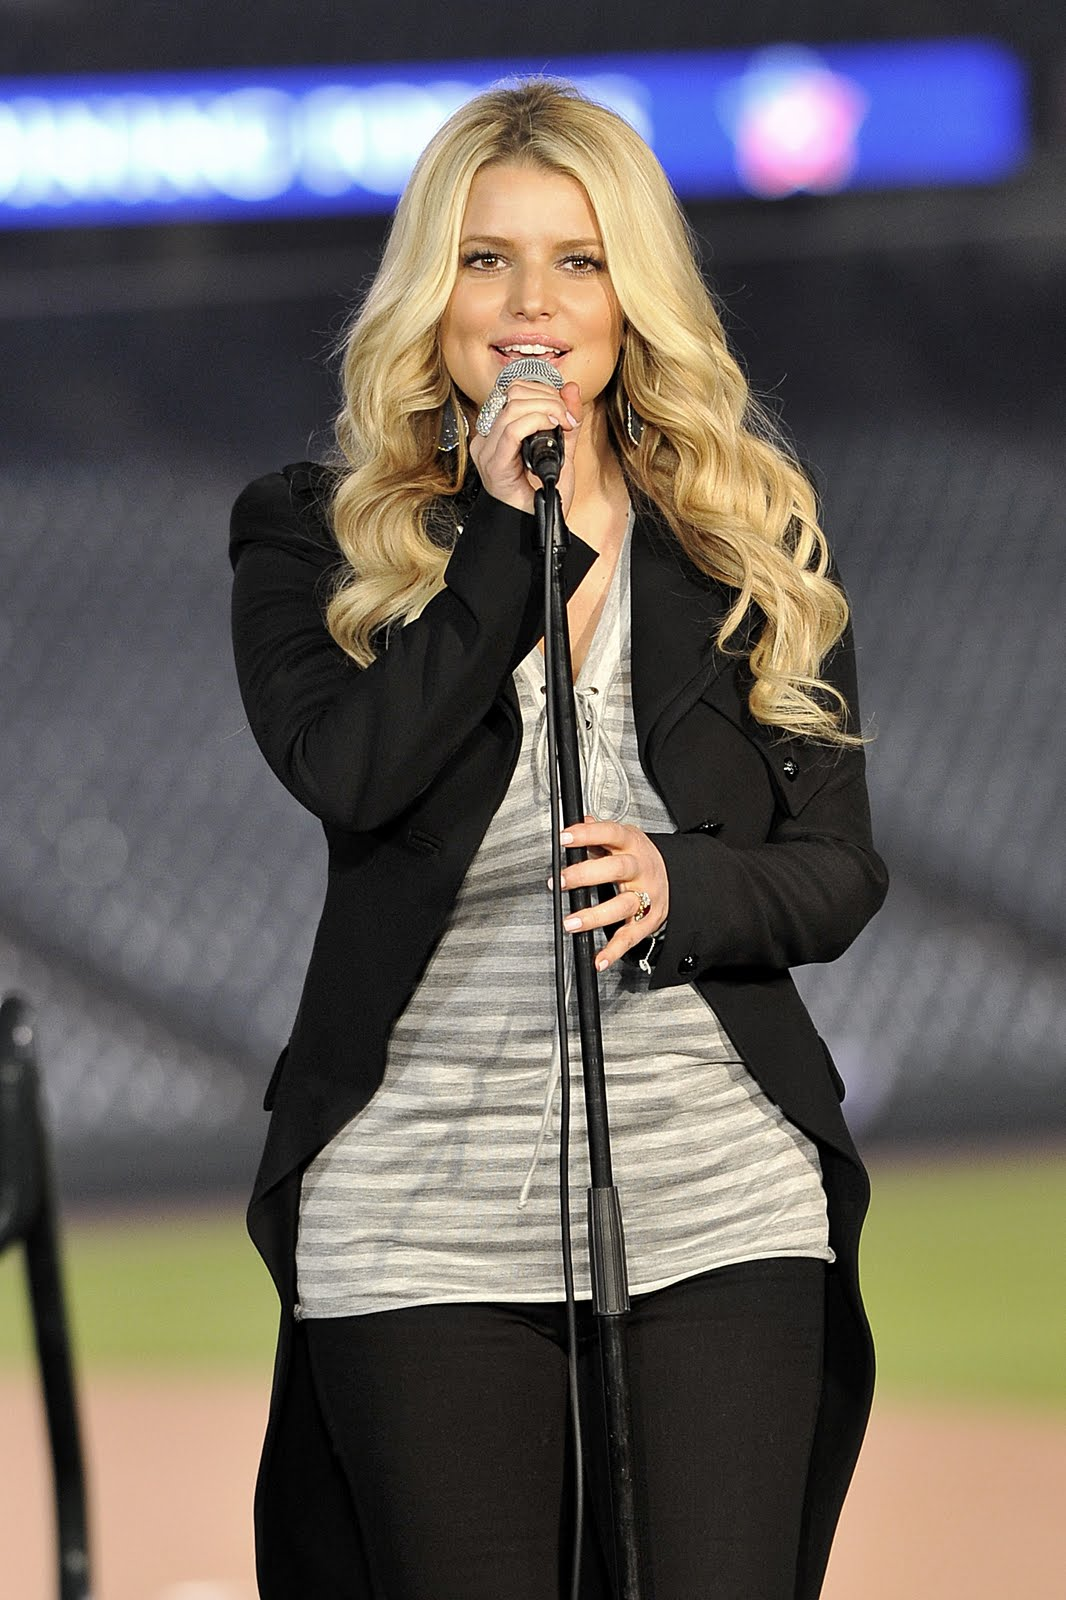 http://4.bp.blogspot.com/-MSbwbvzxyBY/Tjq-Gk_mrZI/AAAAAAAAAY0/rtGyS_v67D4/s1600/Jessica_Simpson_Joining_Forces_with_the_Rockies_April_2011.jpg